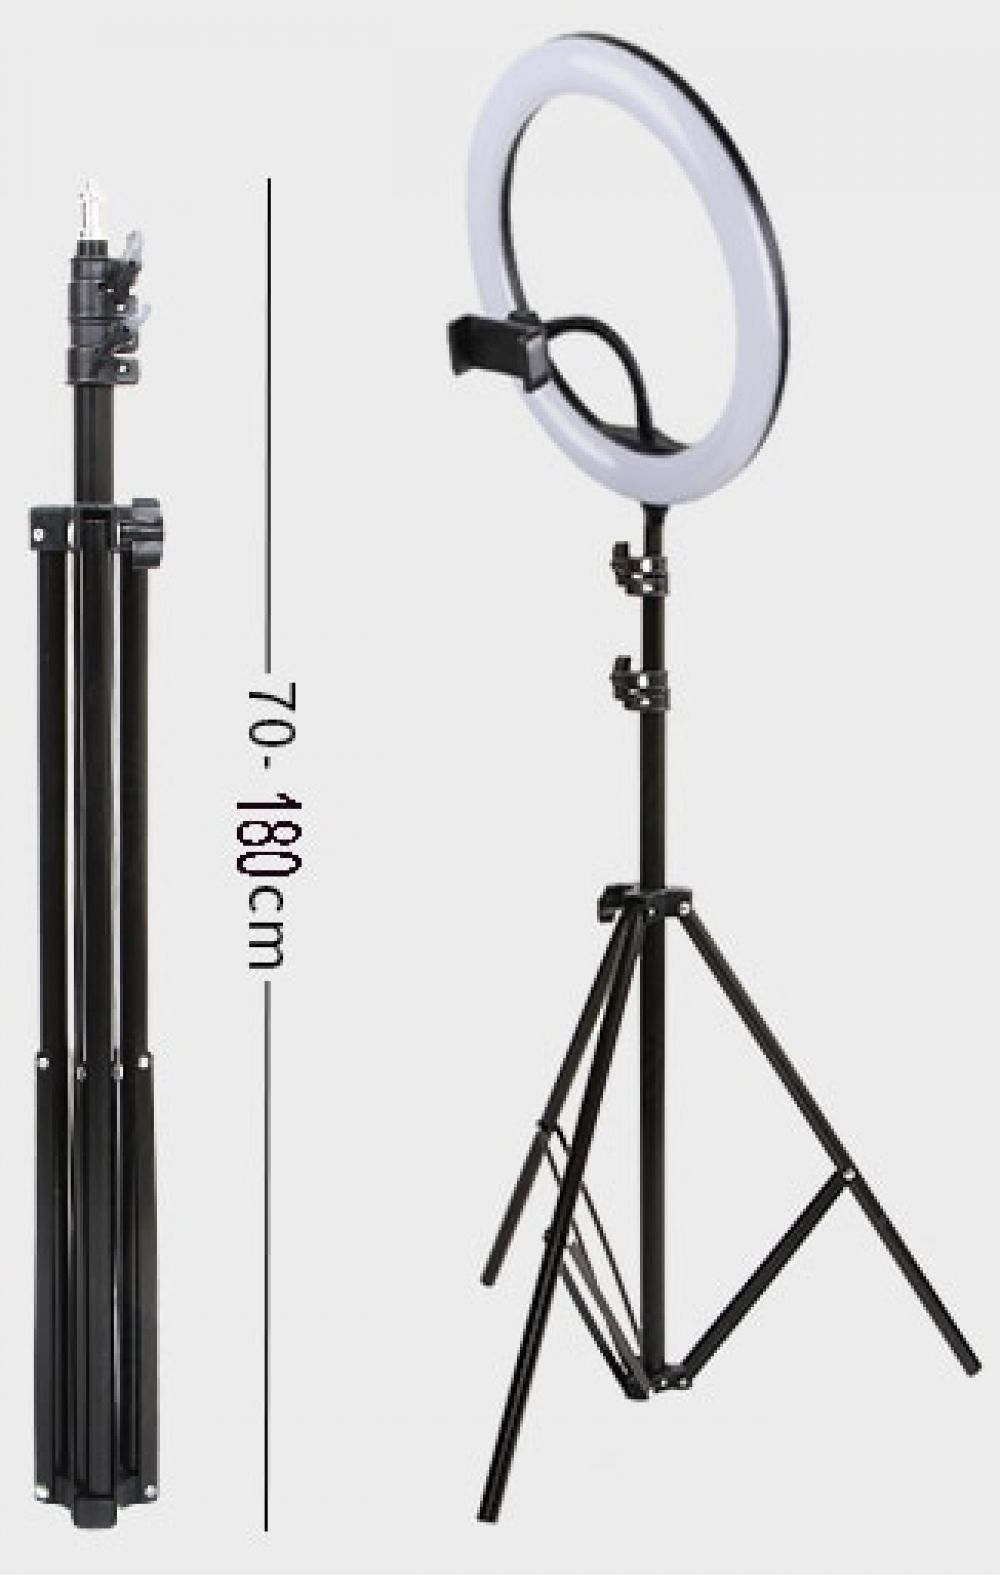 Home Pro Buyerz Light Accessories Dslr Ring Light Price